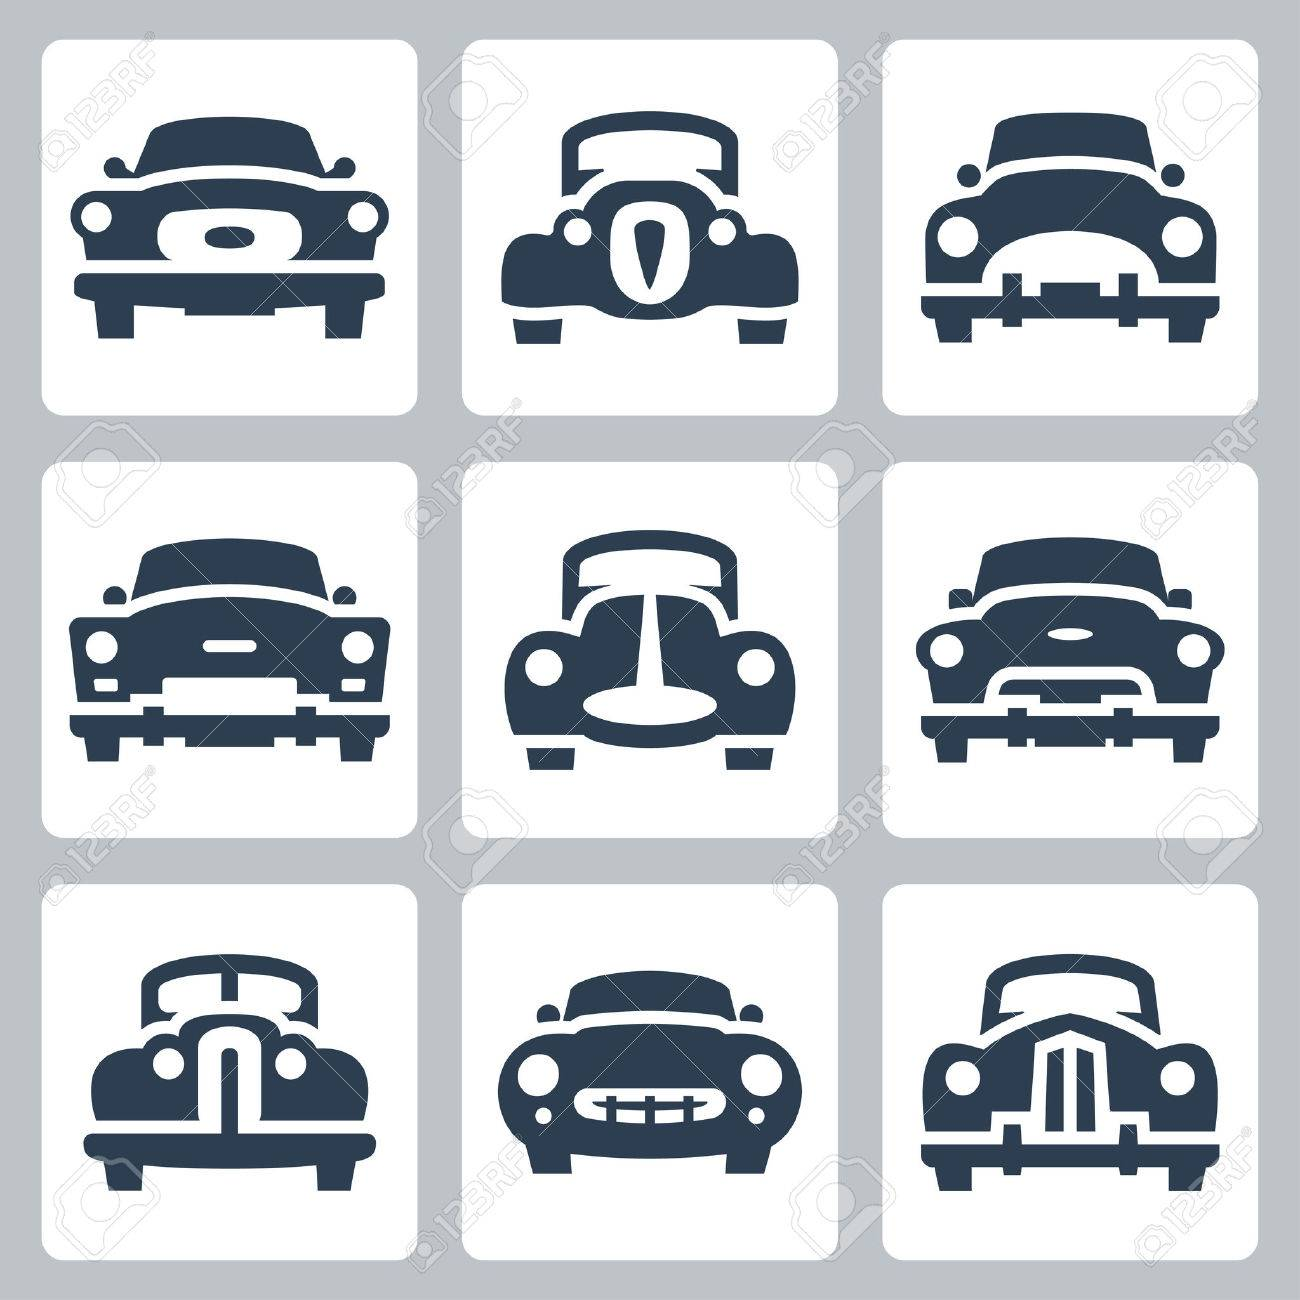 Vector old cars icons set, front view - 27426070